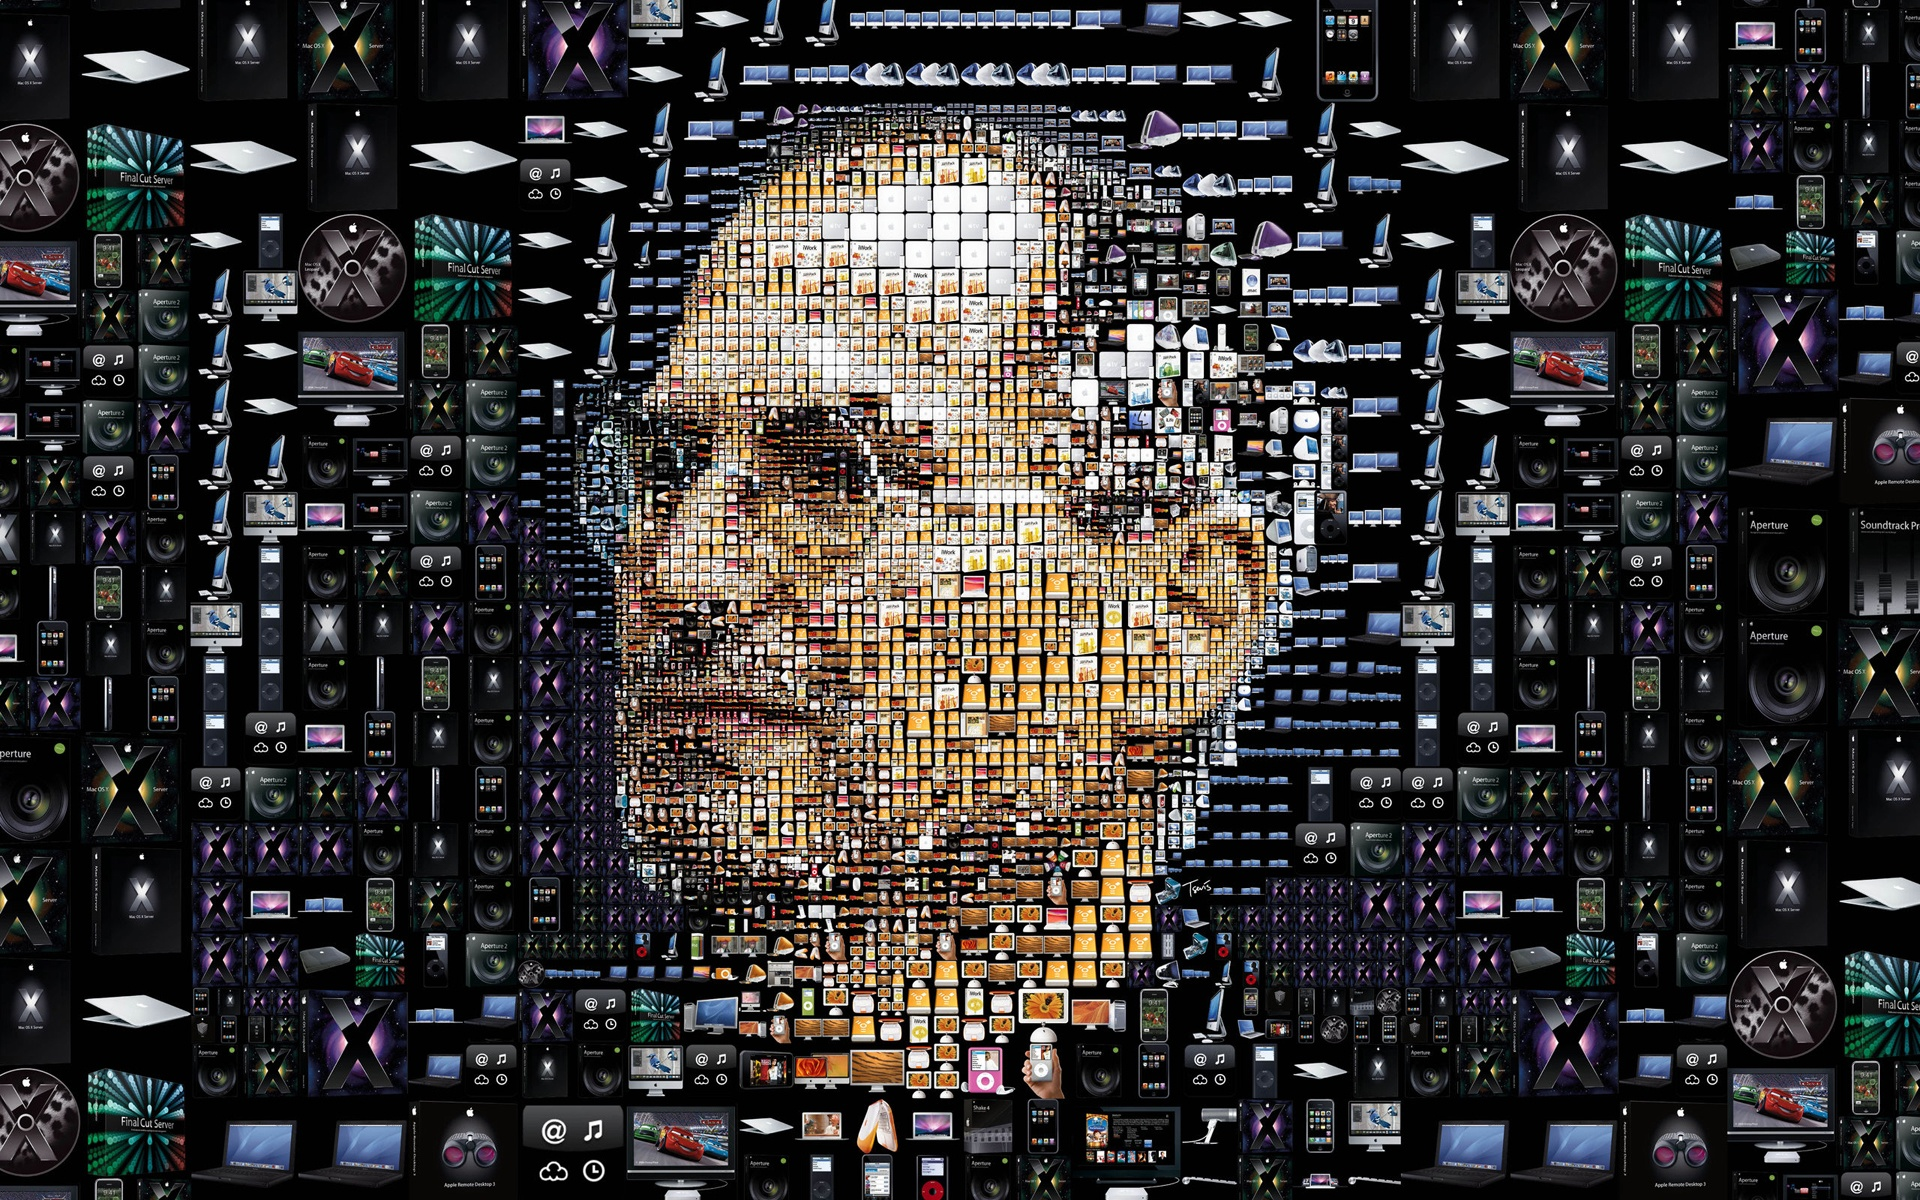 Steve Jobs Commemorative 3192.08 Kb